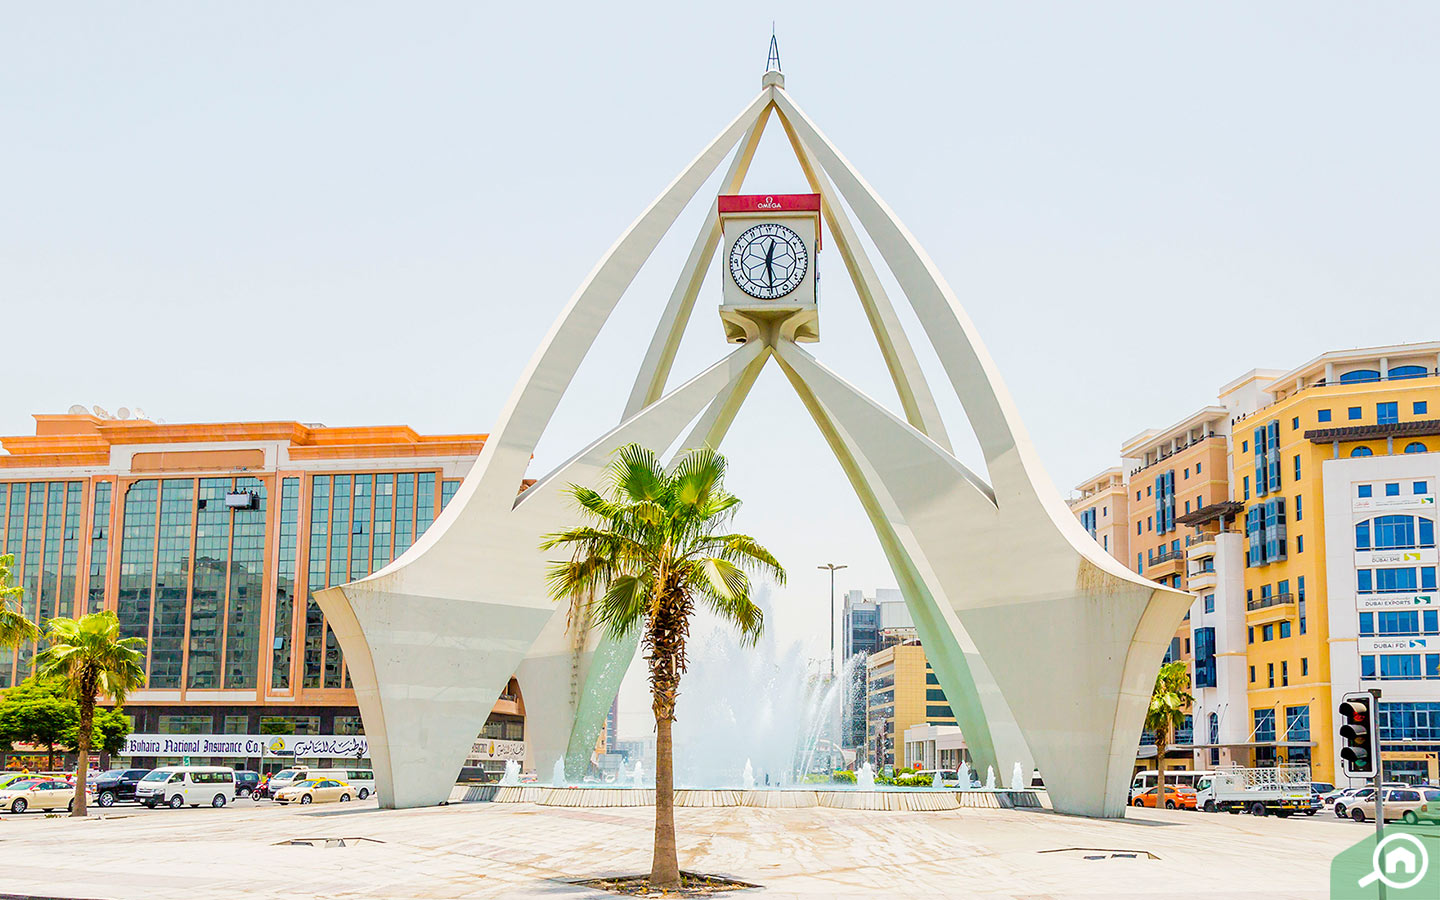 If you want to see the well-known monument of Dubai - the clock tower, living in Deira can be a great option.